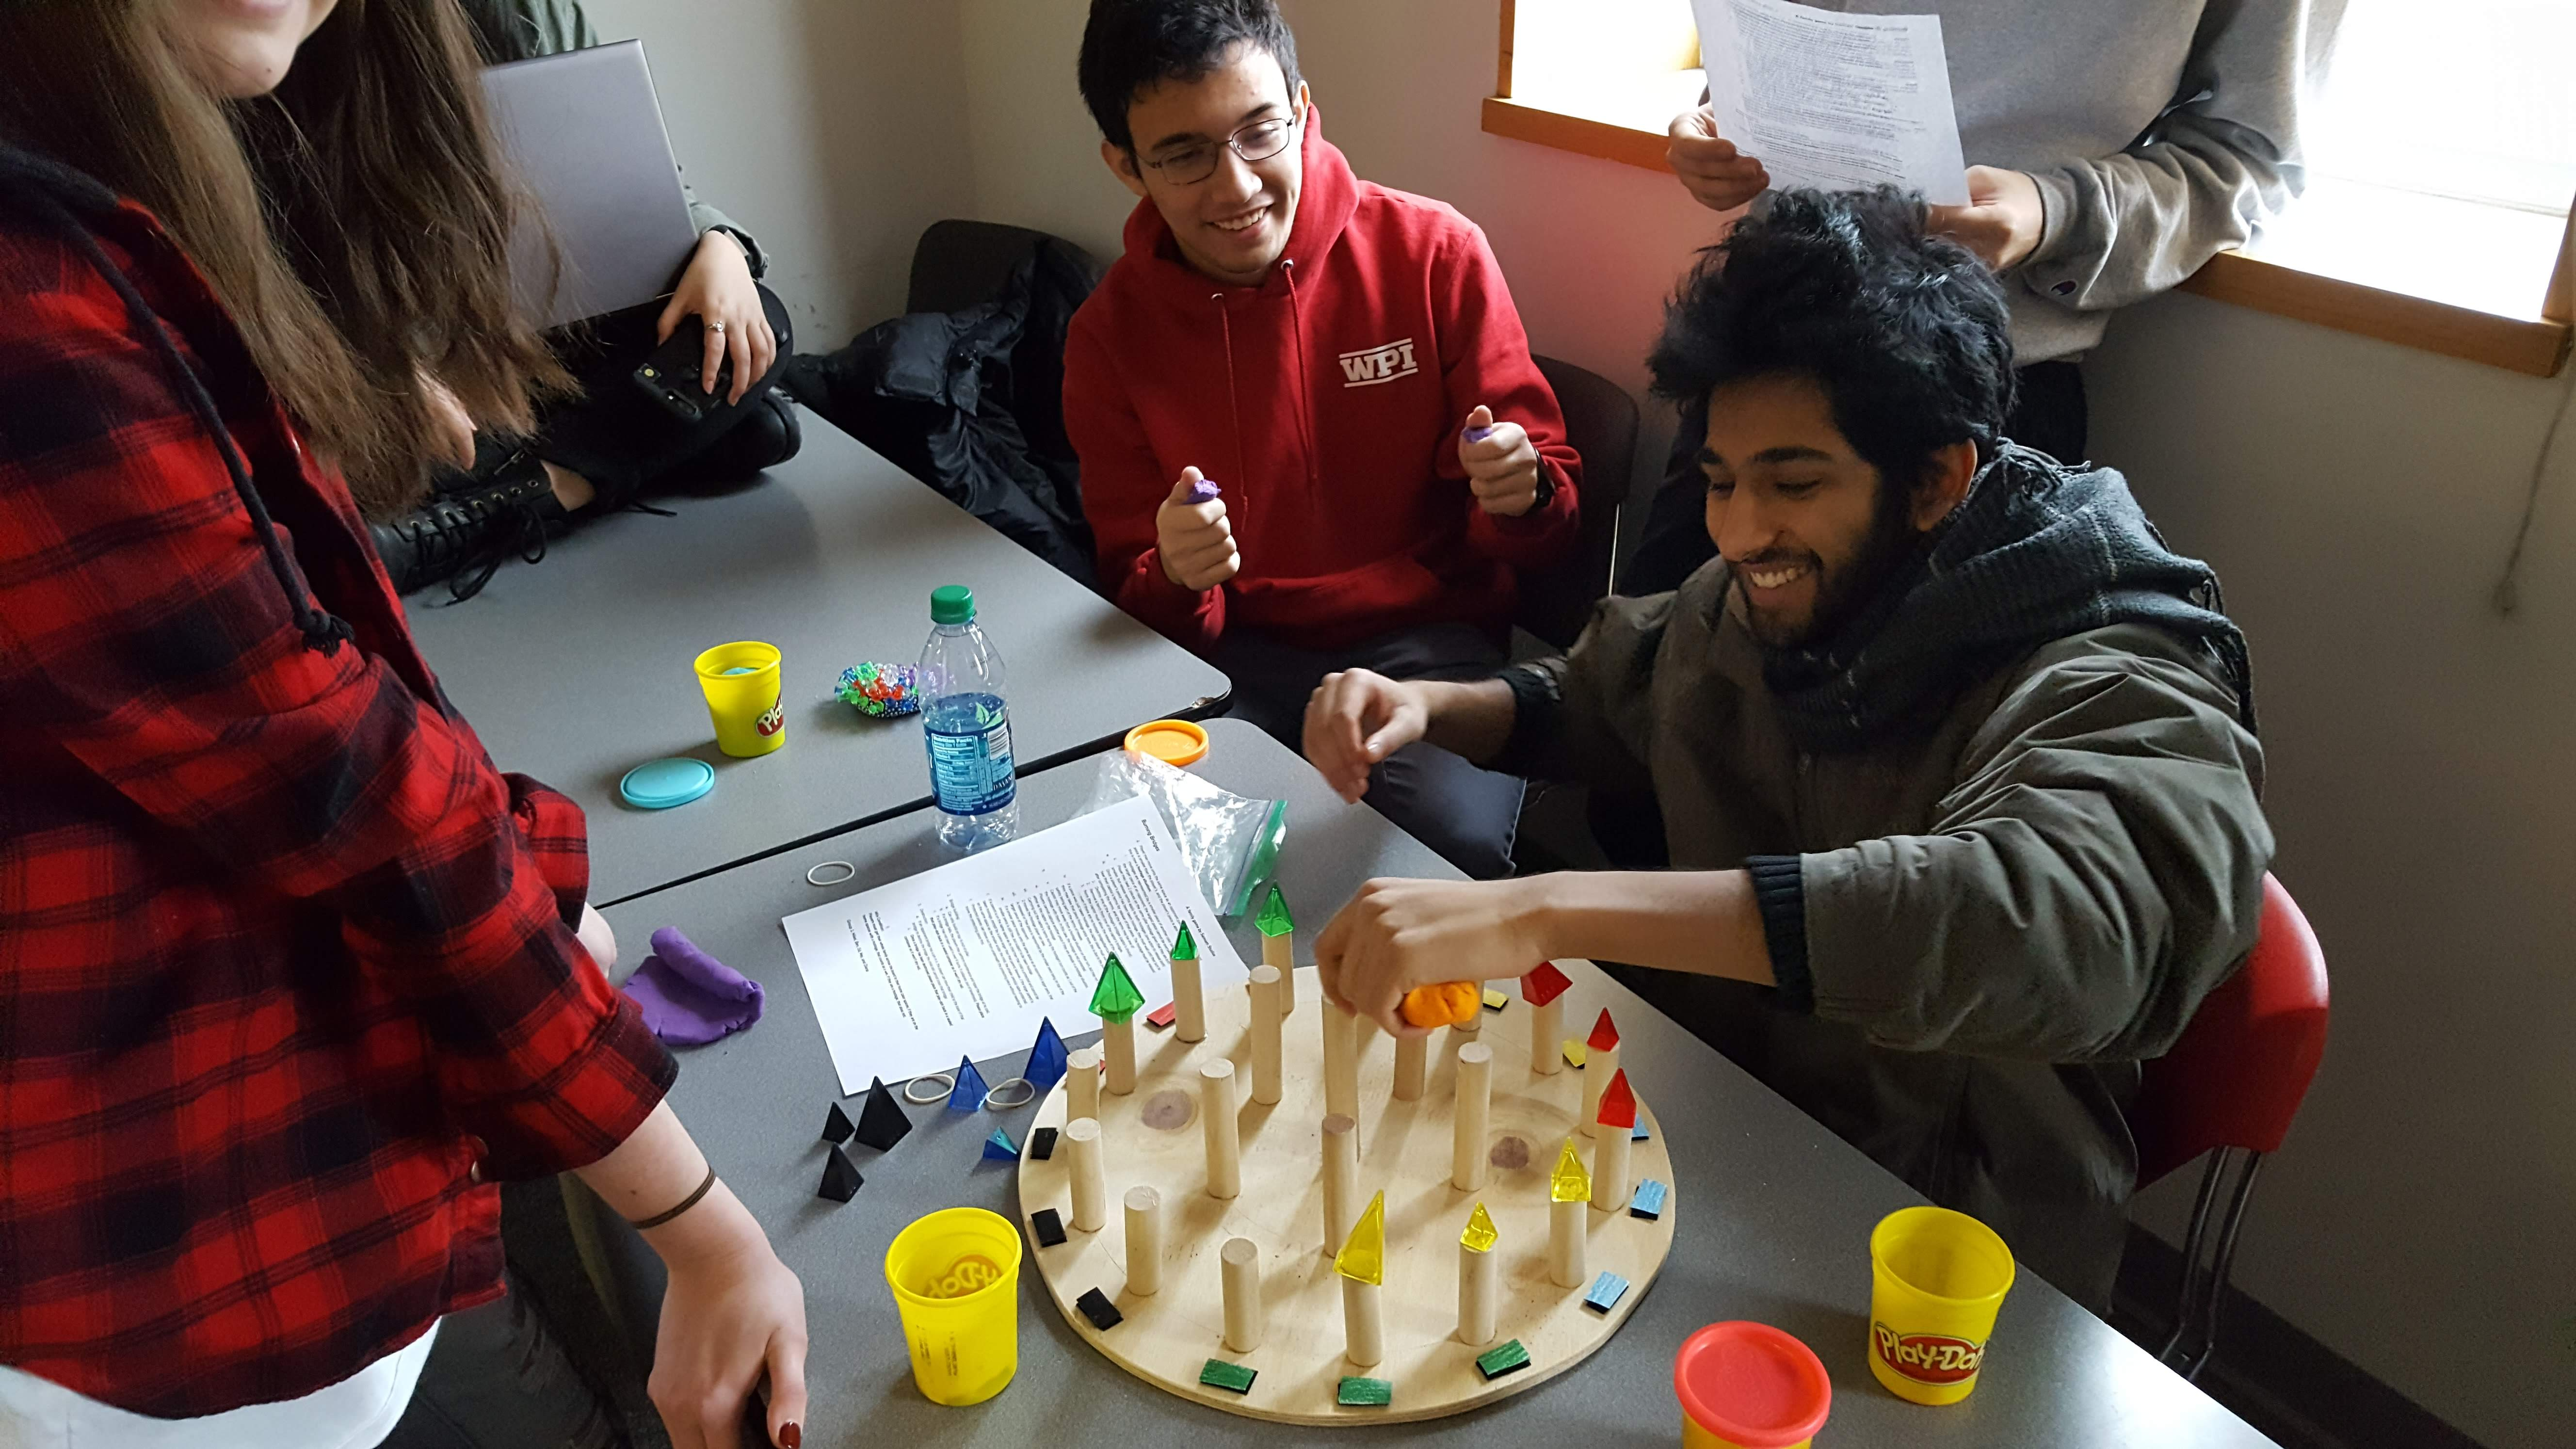 IMGD students playtesting a paper prototype of a board game.